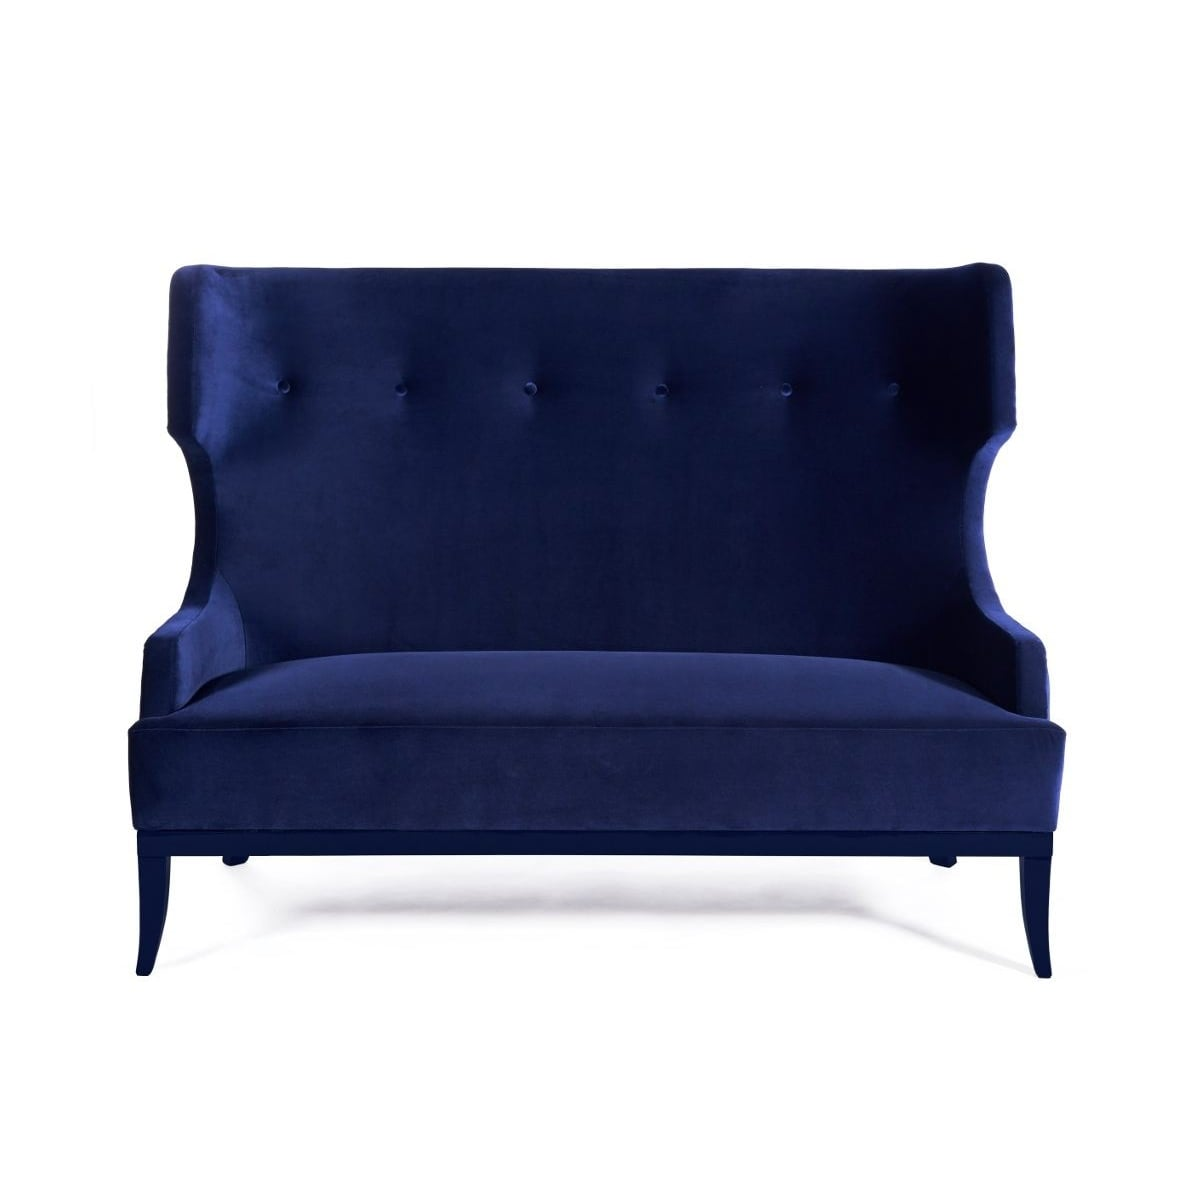 2 seat sofa blue designer furniture swanky interiors for Divan furniture